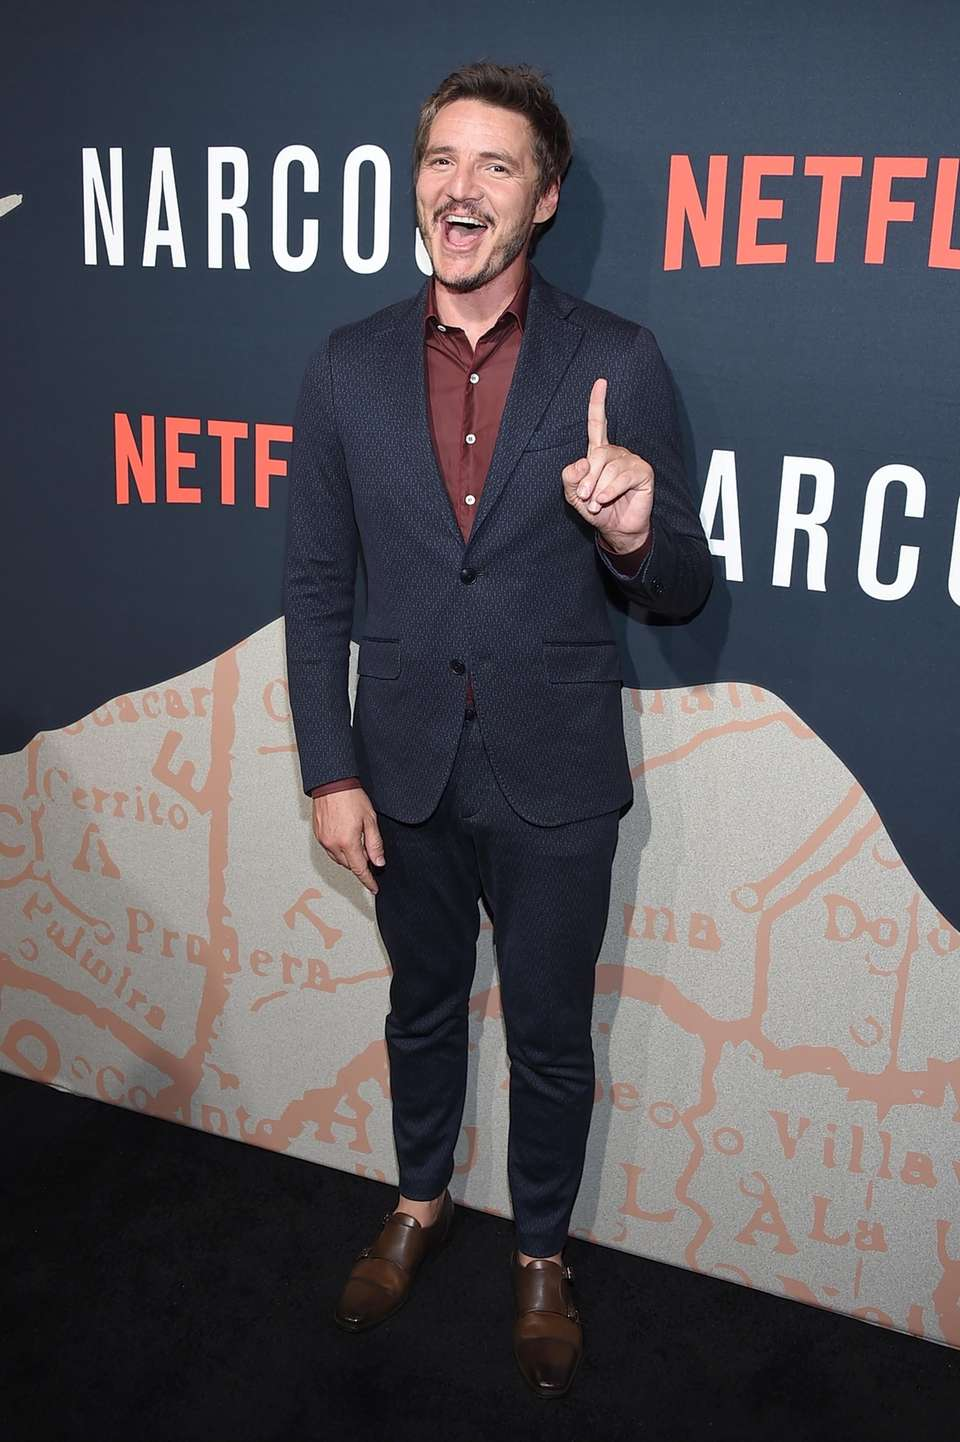 Pedro Pascal attends a screening of the Neflix